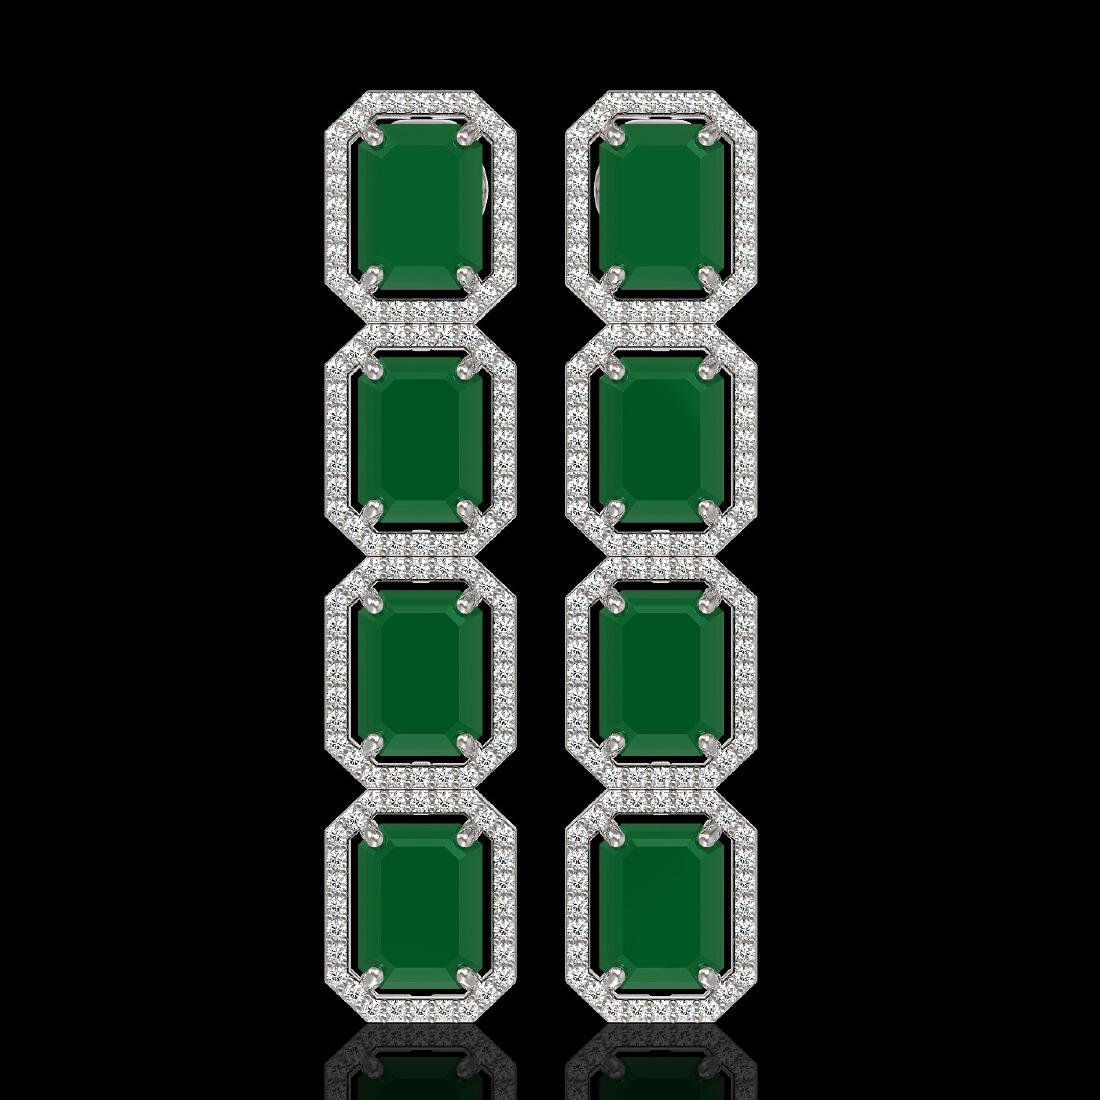 20.59 CTW Emerald & Diamond Halo Earrings 10K White